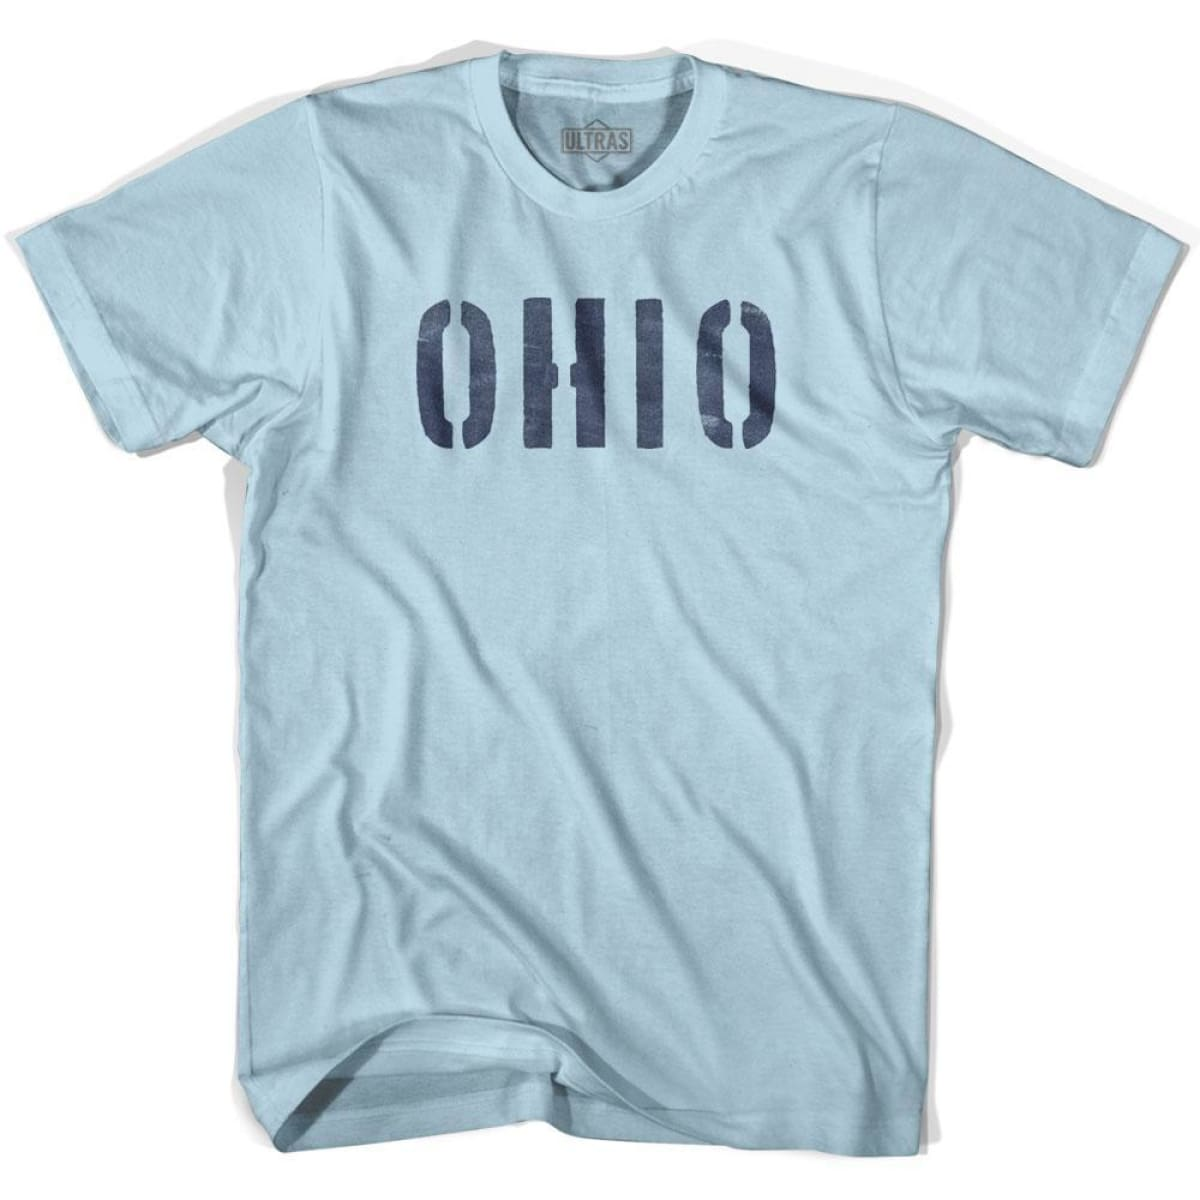 Ohio State Stencil Adult Cotton T-shirt - Light Blue / Adult Small - Stencil State